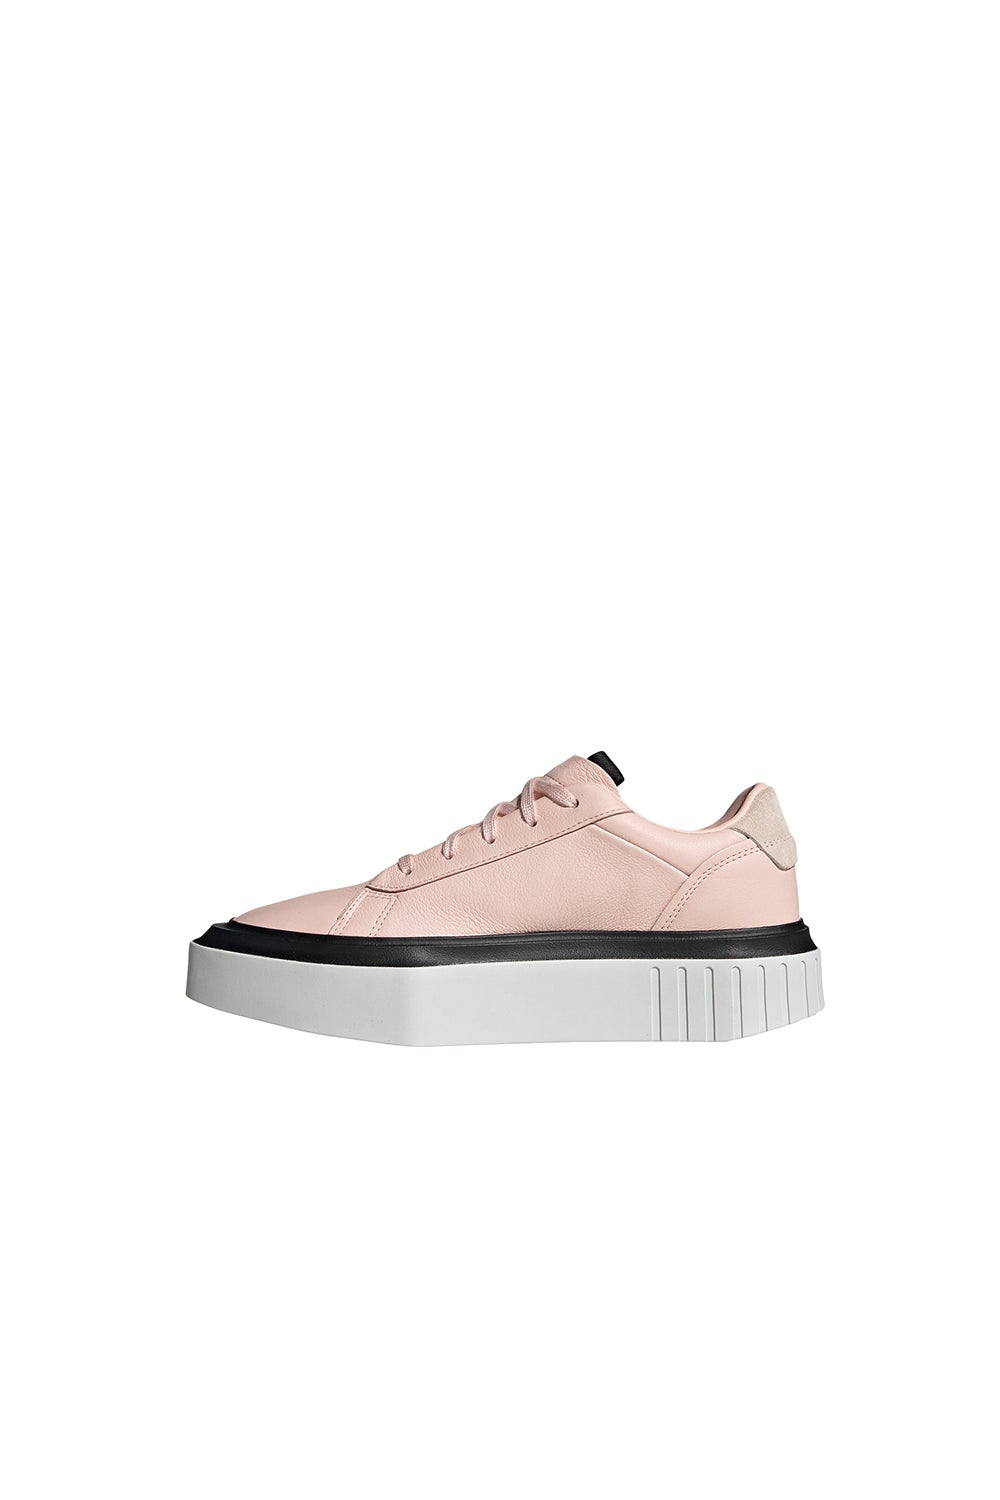 adidas Hypersleek Shoes Icey Pink/Crystal White/Core Black